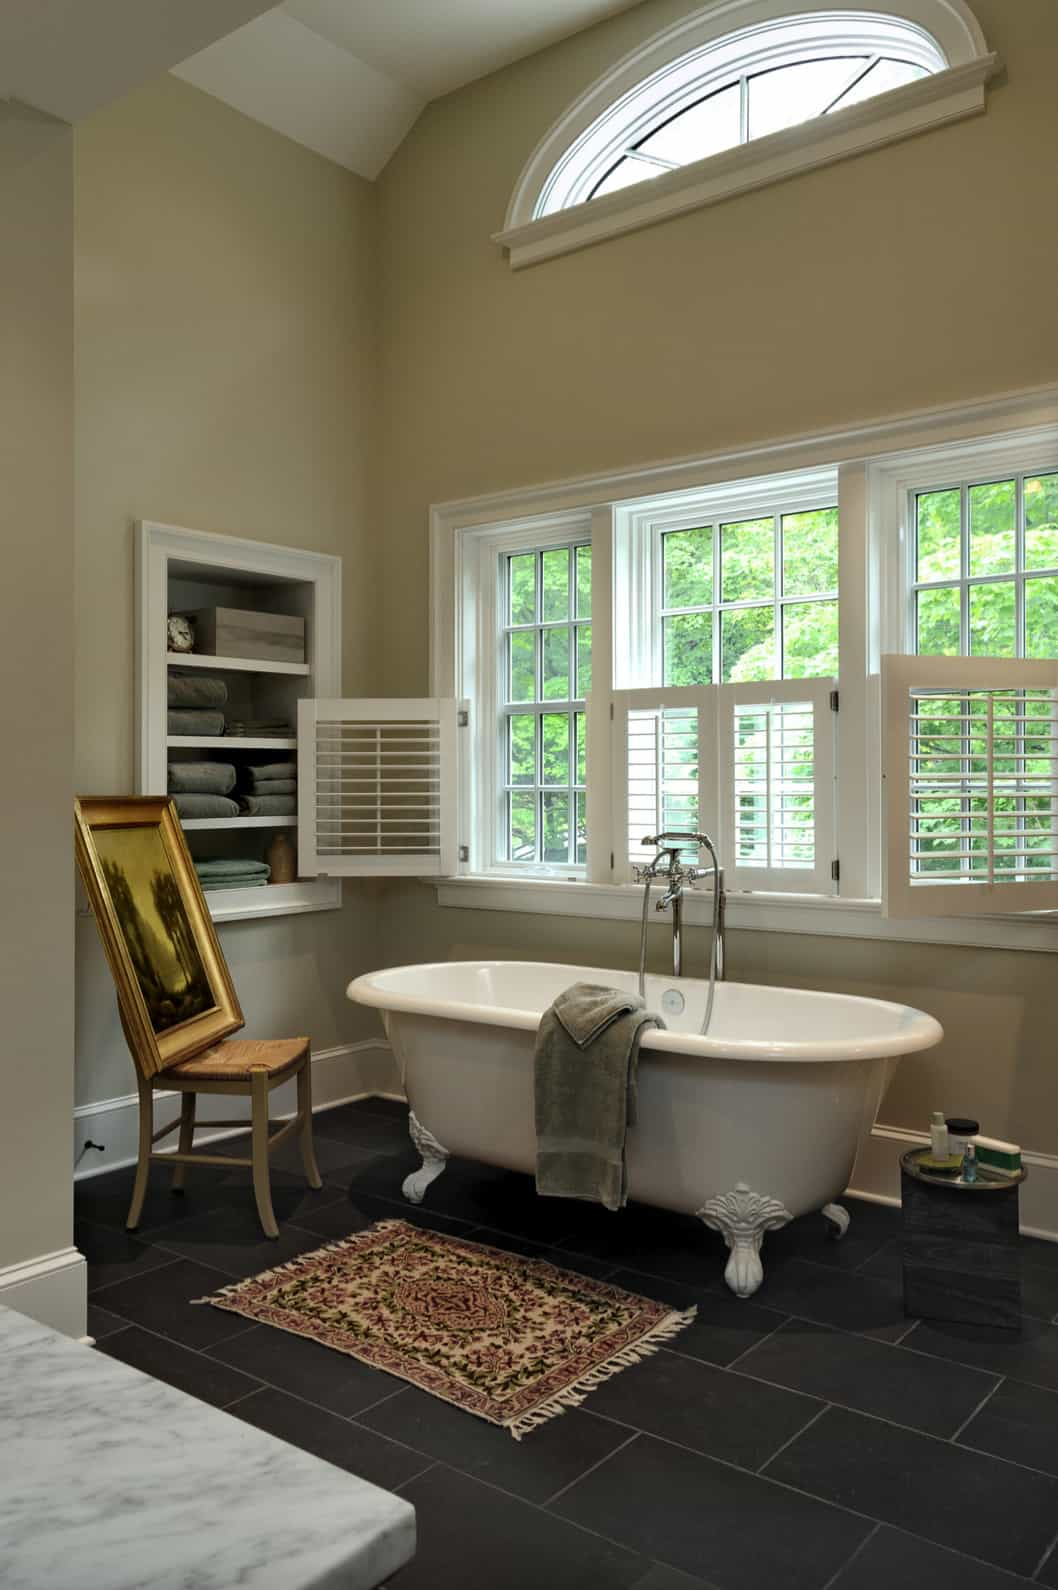 traditional-country-style-bathroom-with-a-clawfoot-tub